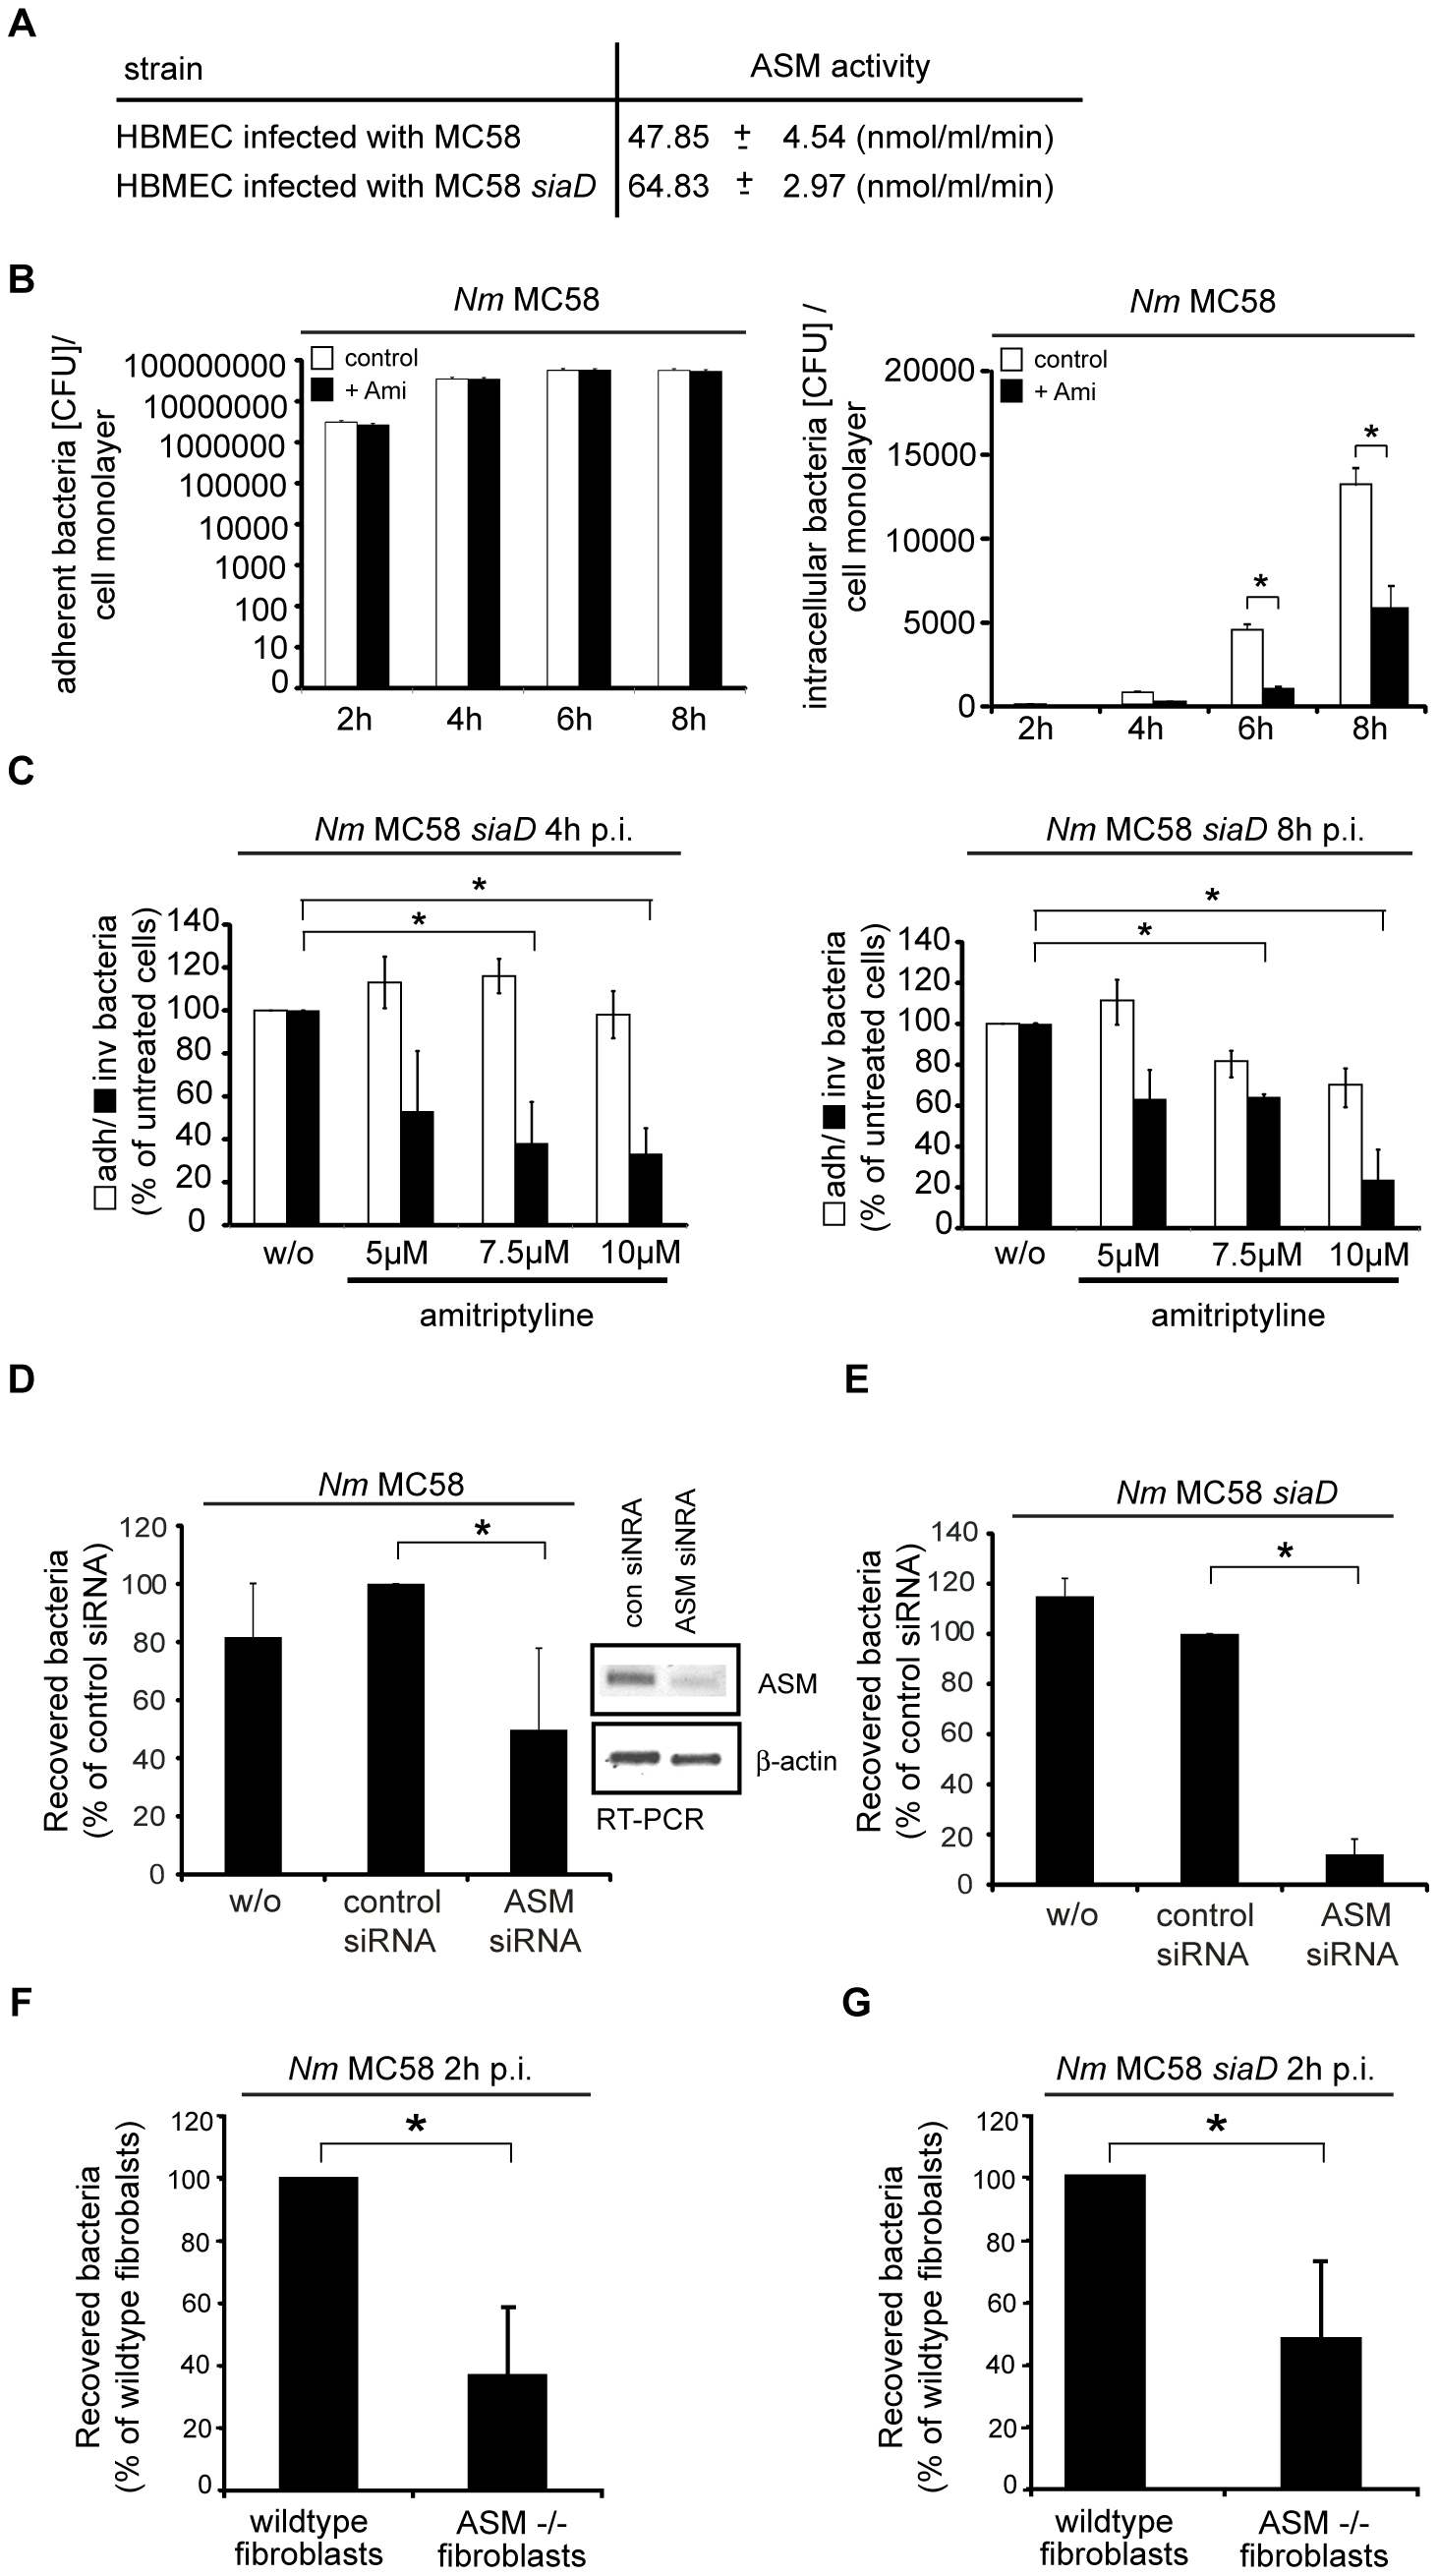 Inhibition of acid sphingomyelinase prevents <i>N. meningitidis</i> uptake by host cells.